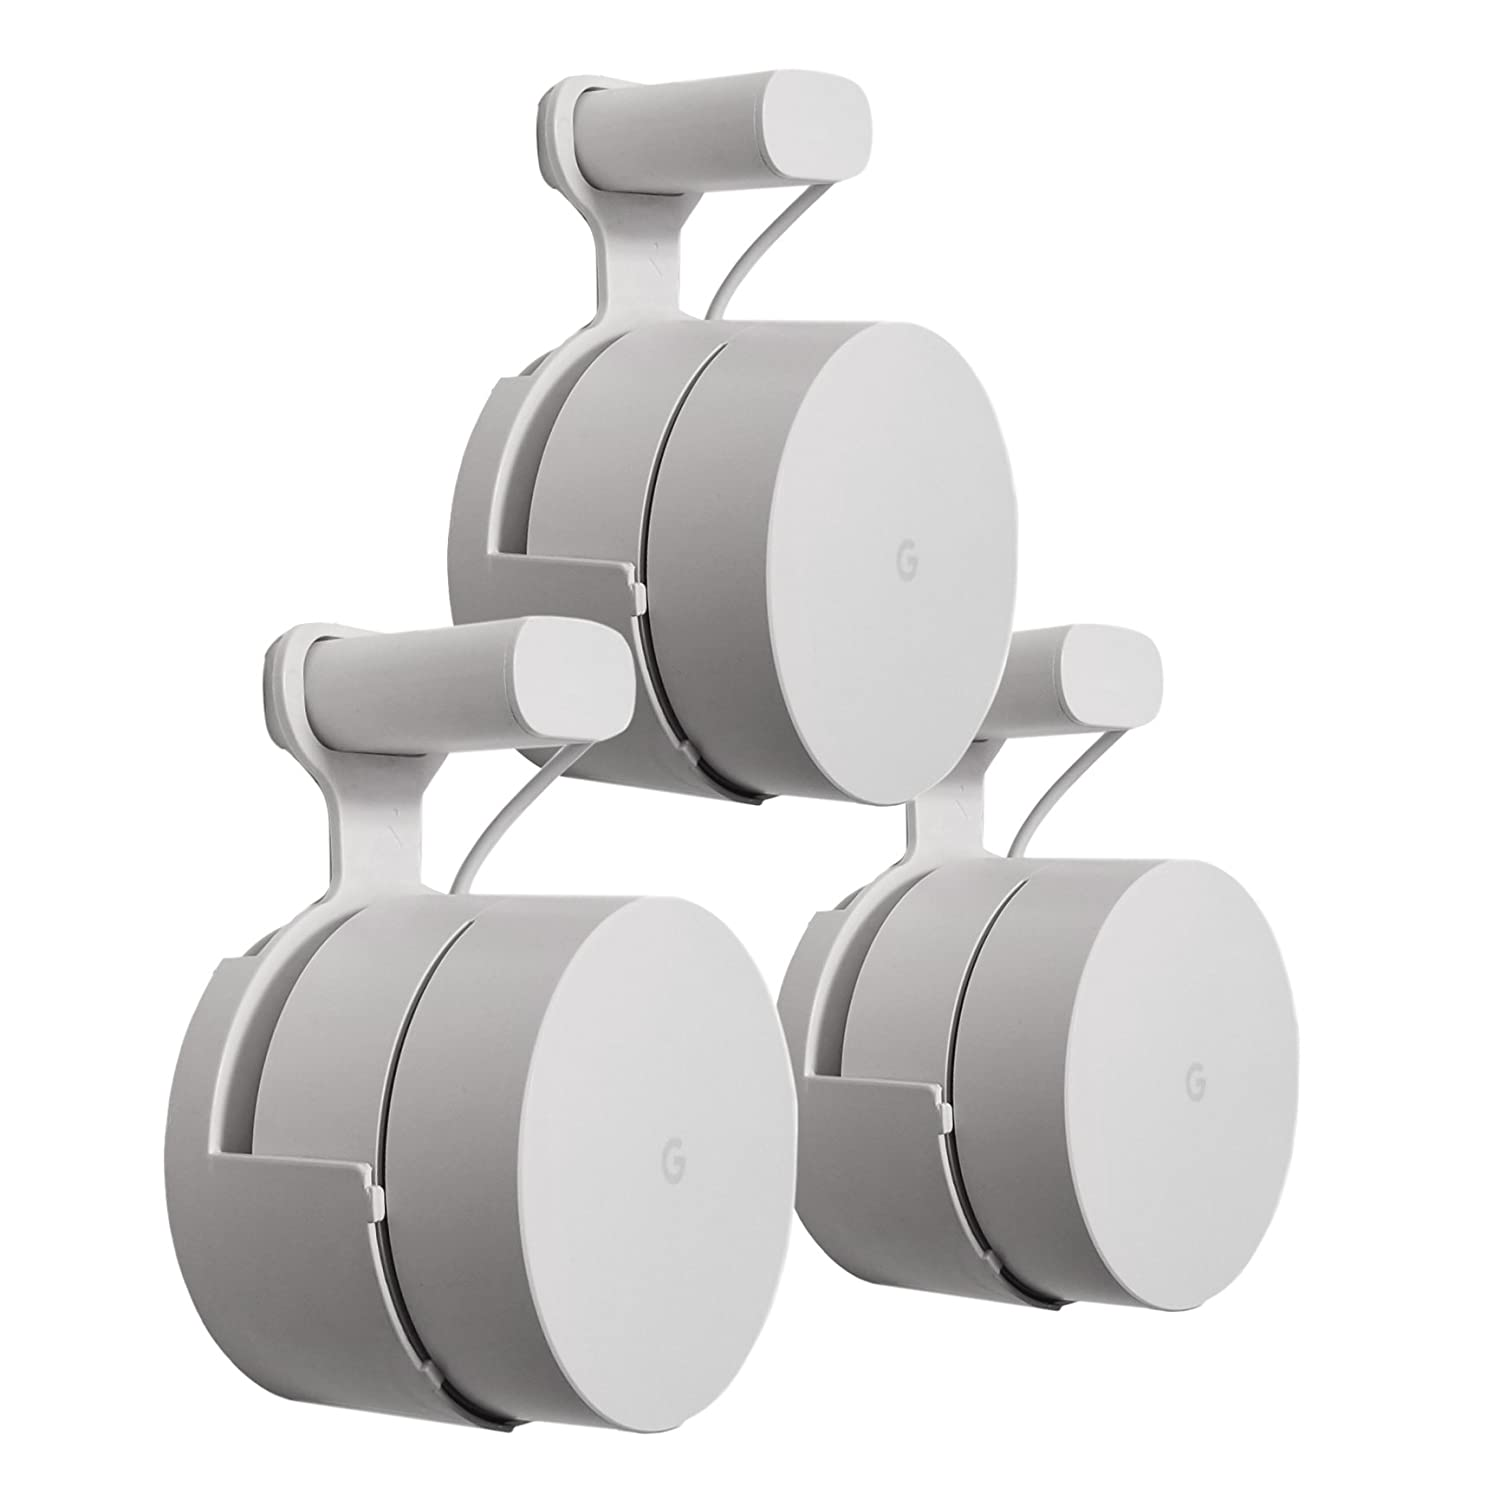 The Spot for Google WiFi by Mount Genie: The Simplest Wall Mount Holder Stand Bracket for Google WiFi routers and Beacons. No Messy Screws! (3-Pack)